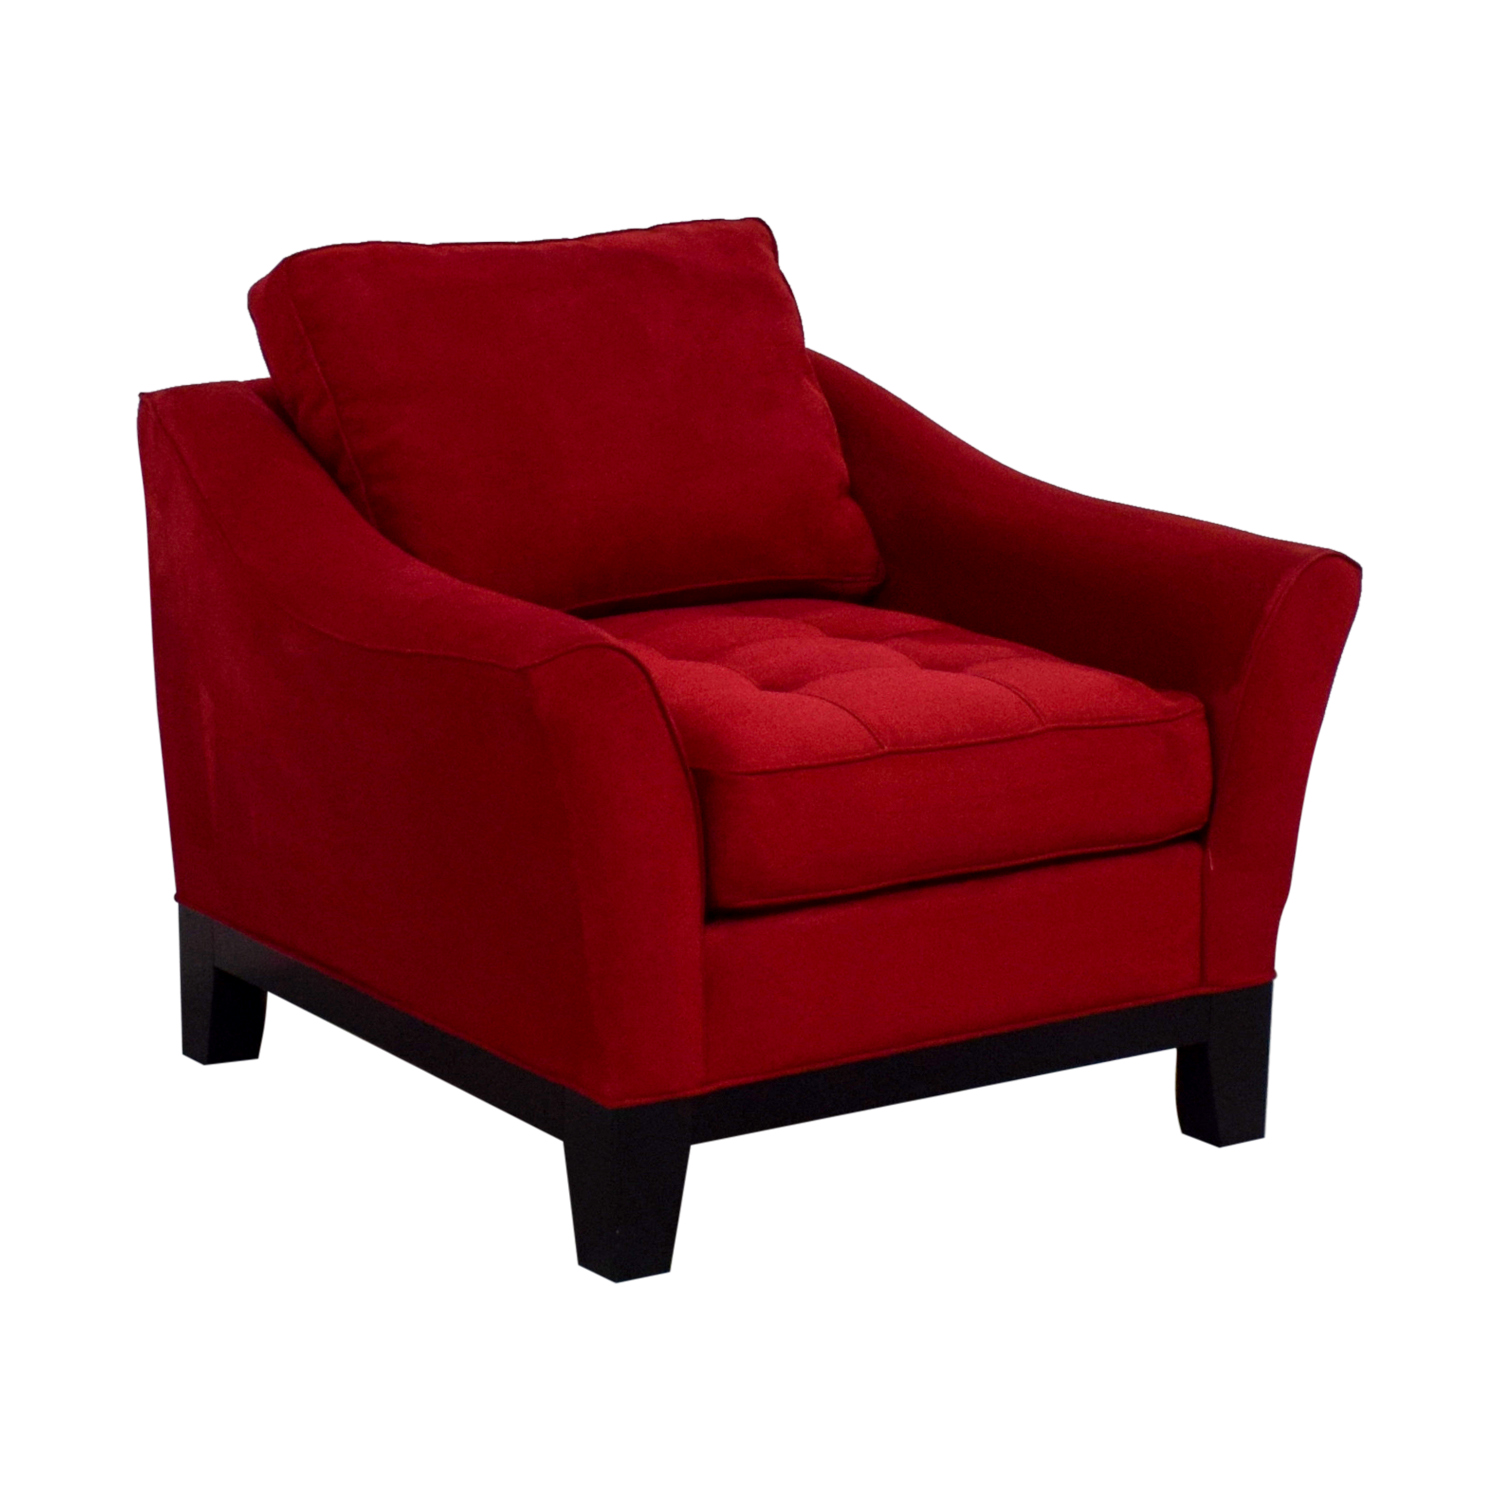 Raymour And Flanigan Molly Accent Chair: Raymour & Flanigan Raymour & Flanigan Red